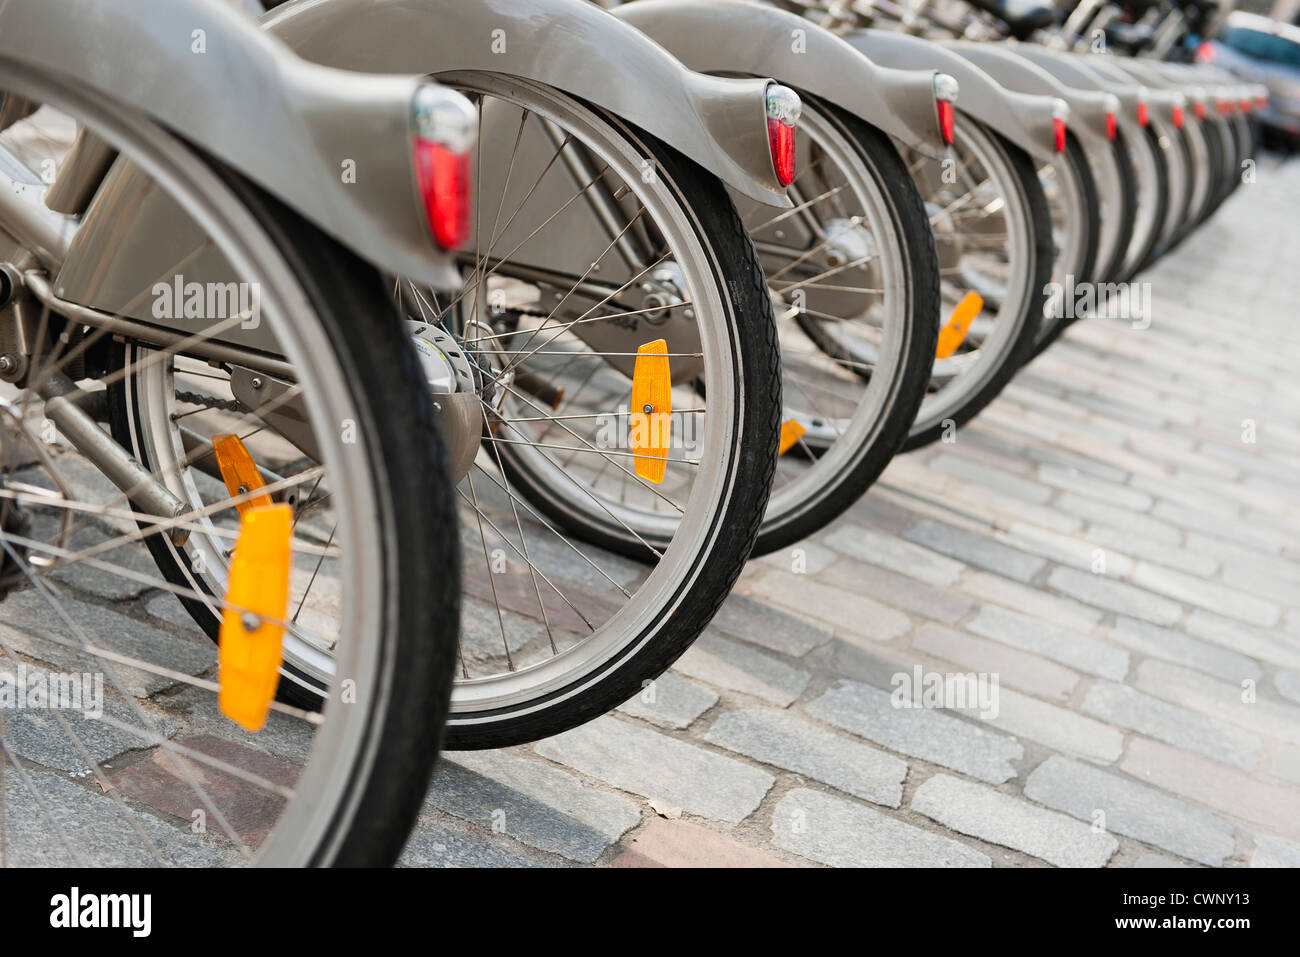 Bicycles parked in a row, cropped - Stock Image